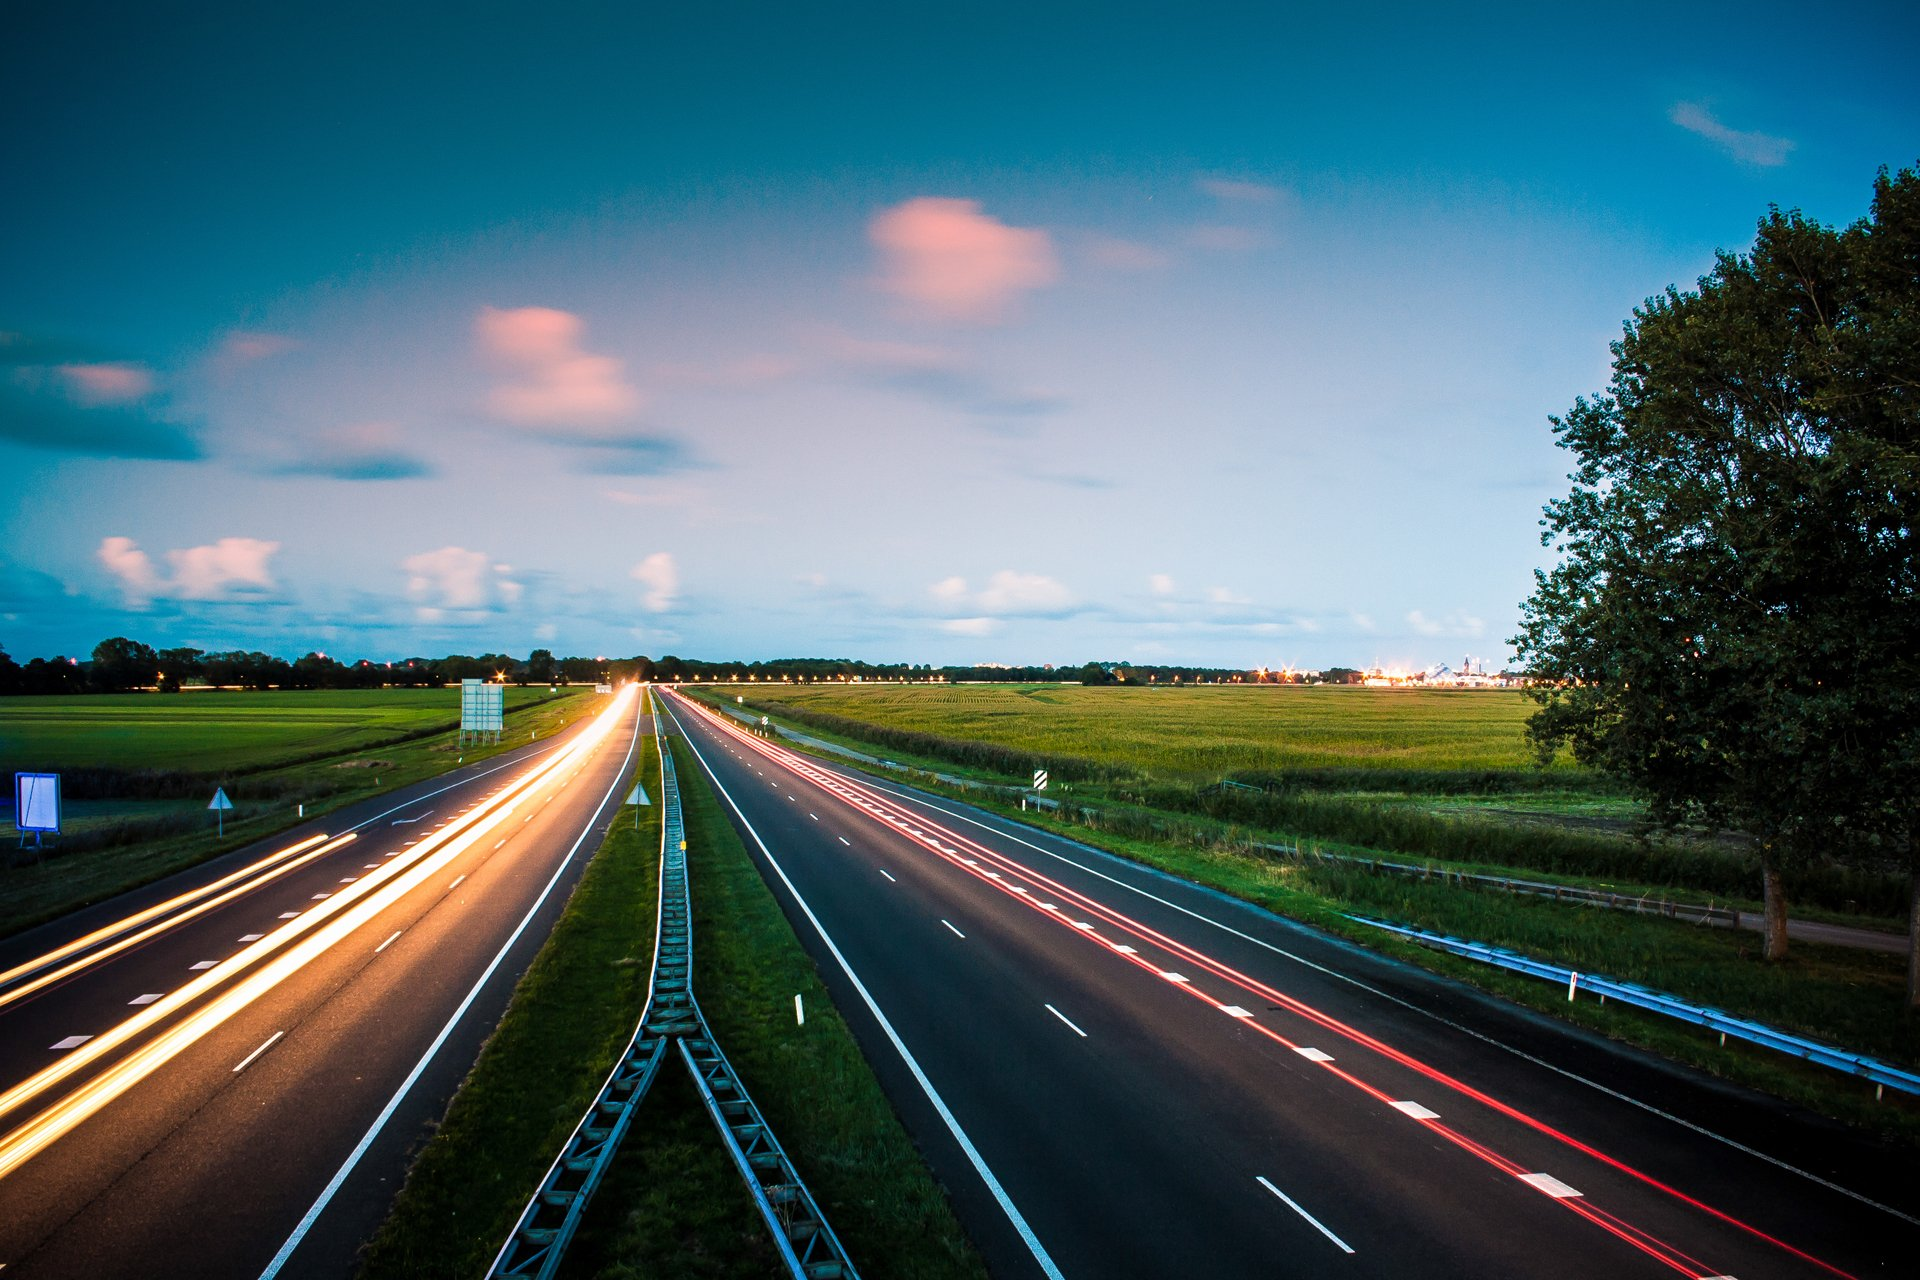 Netherlands Friesland Marssum Highway Road Night Lights Exposure Fall Septemb